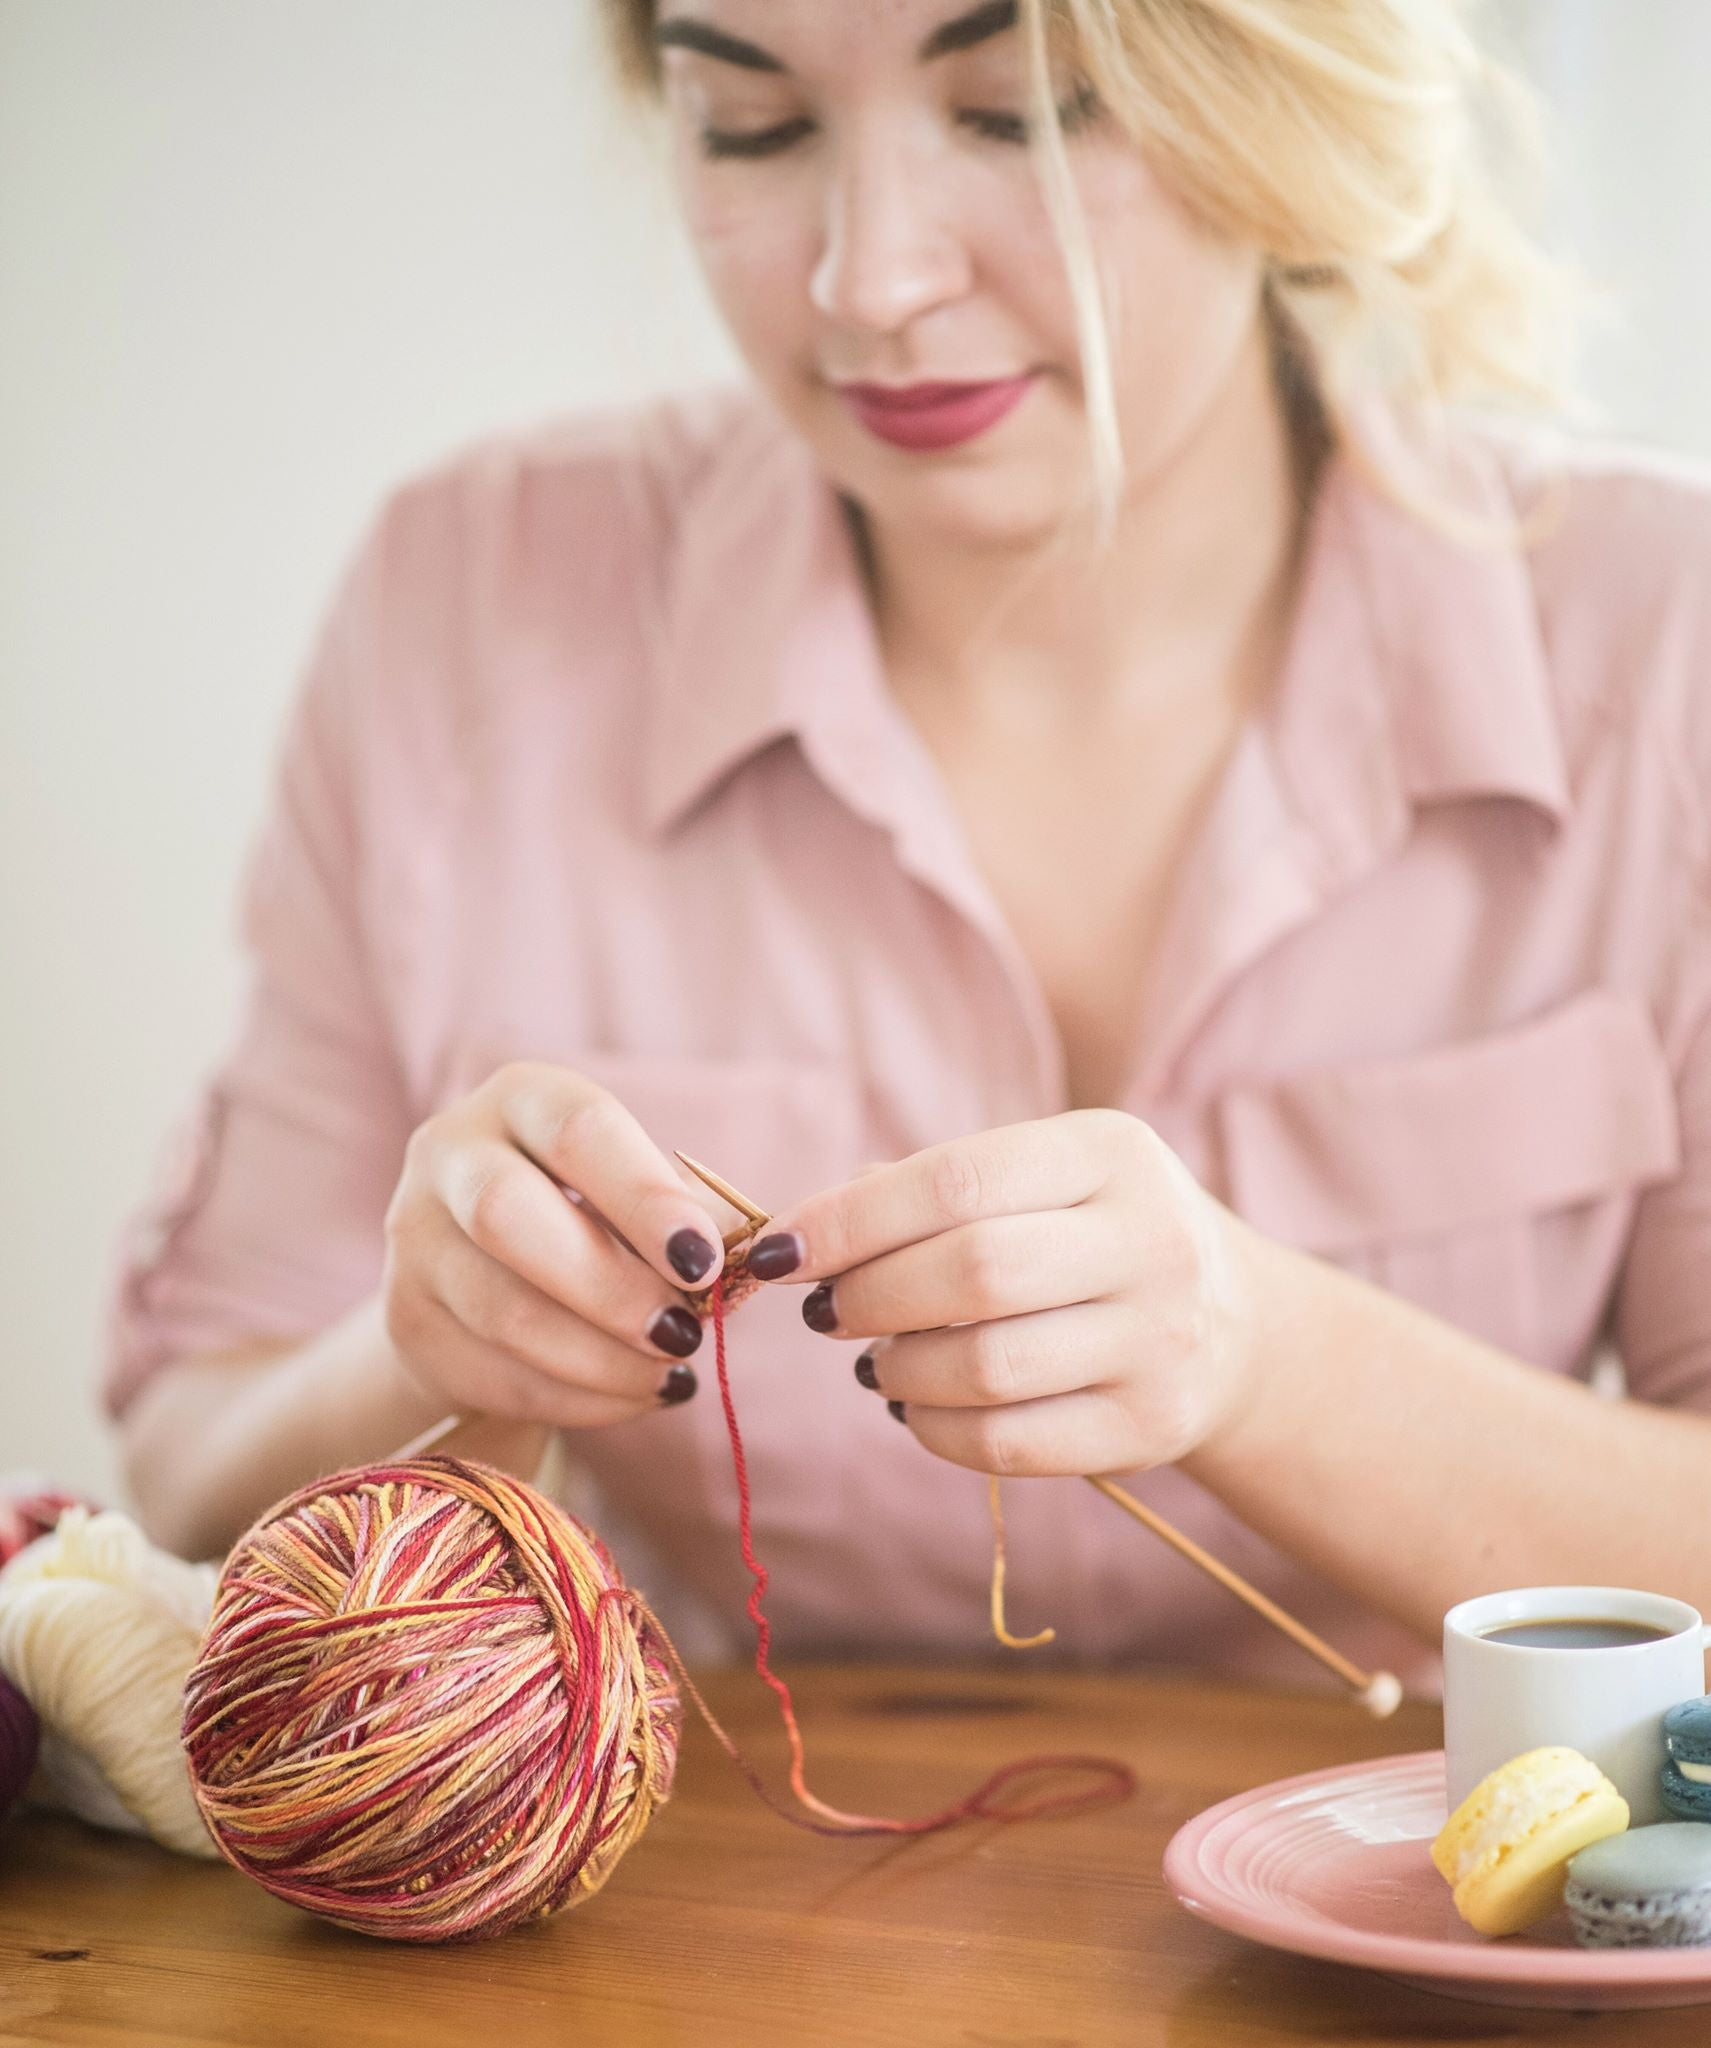 Is It Rude to Knit or Crochet in Public?